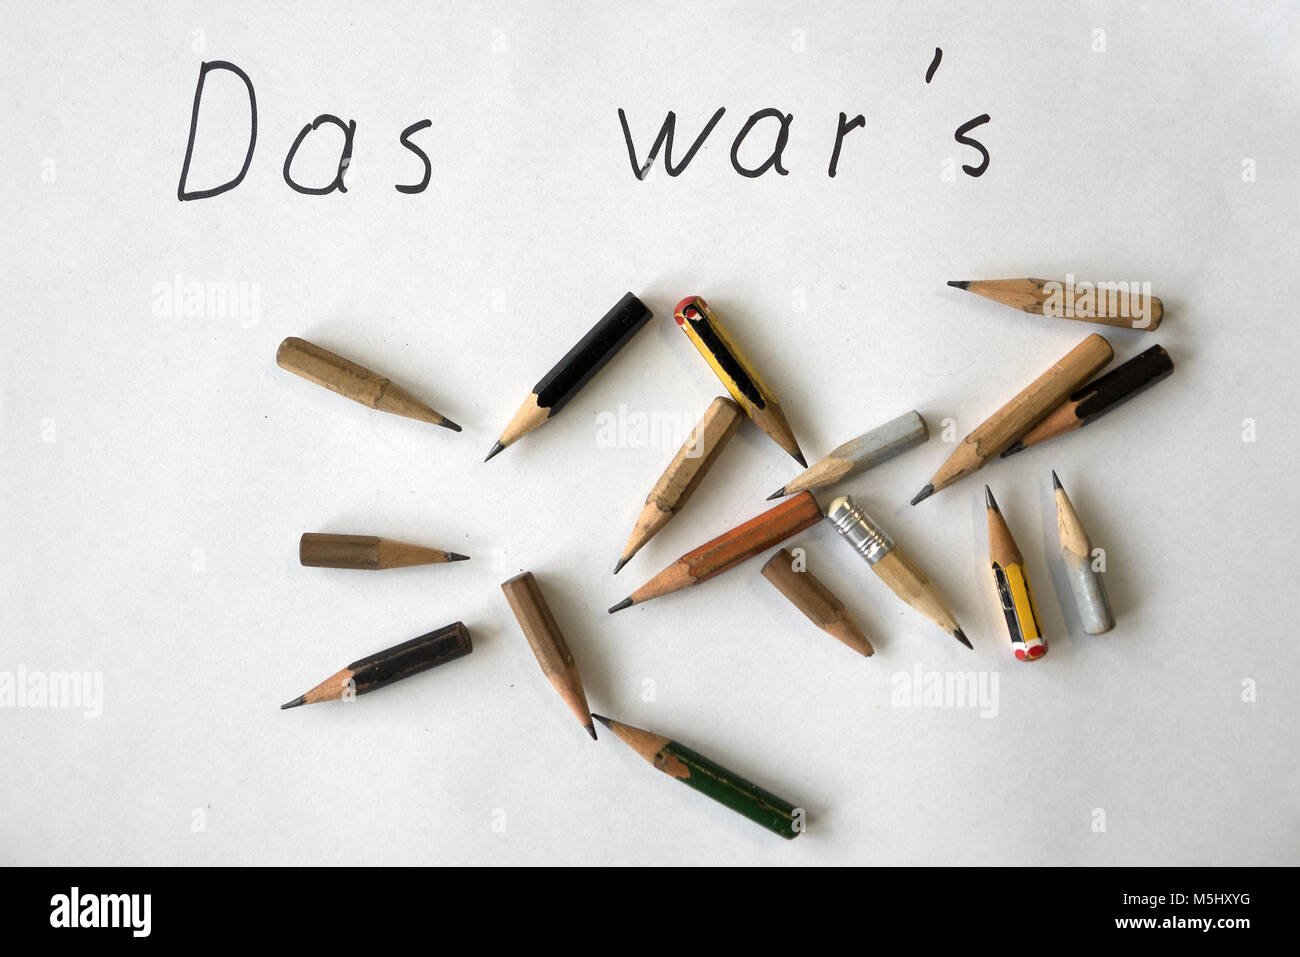 Farewell note stock photos farewell note stock images alamy ironic german retirement farewell note das wars thats it with worn pencils thecheapjerseys Images